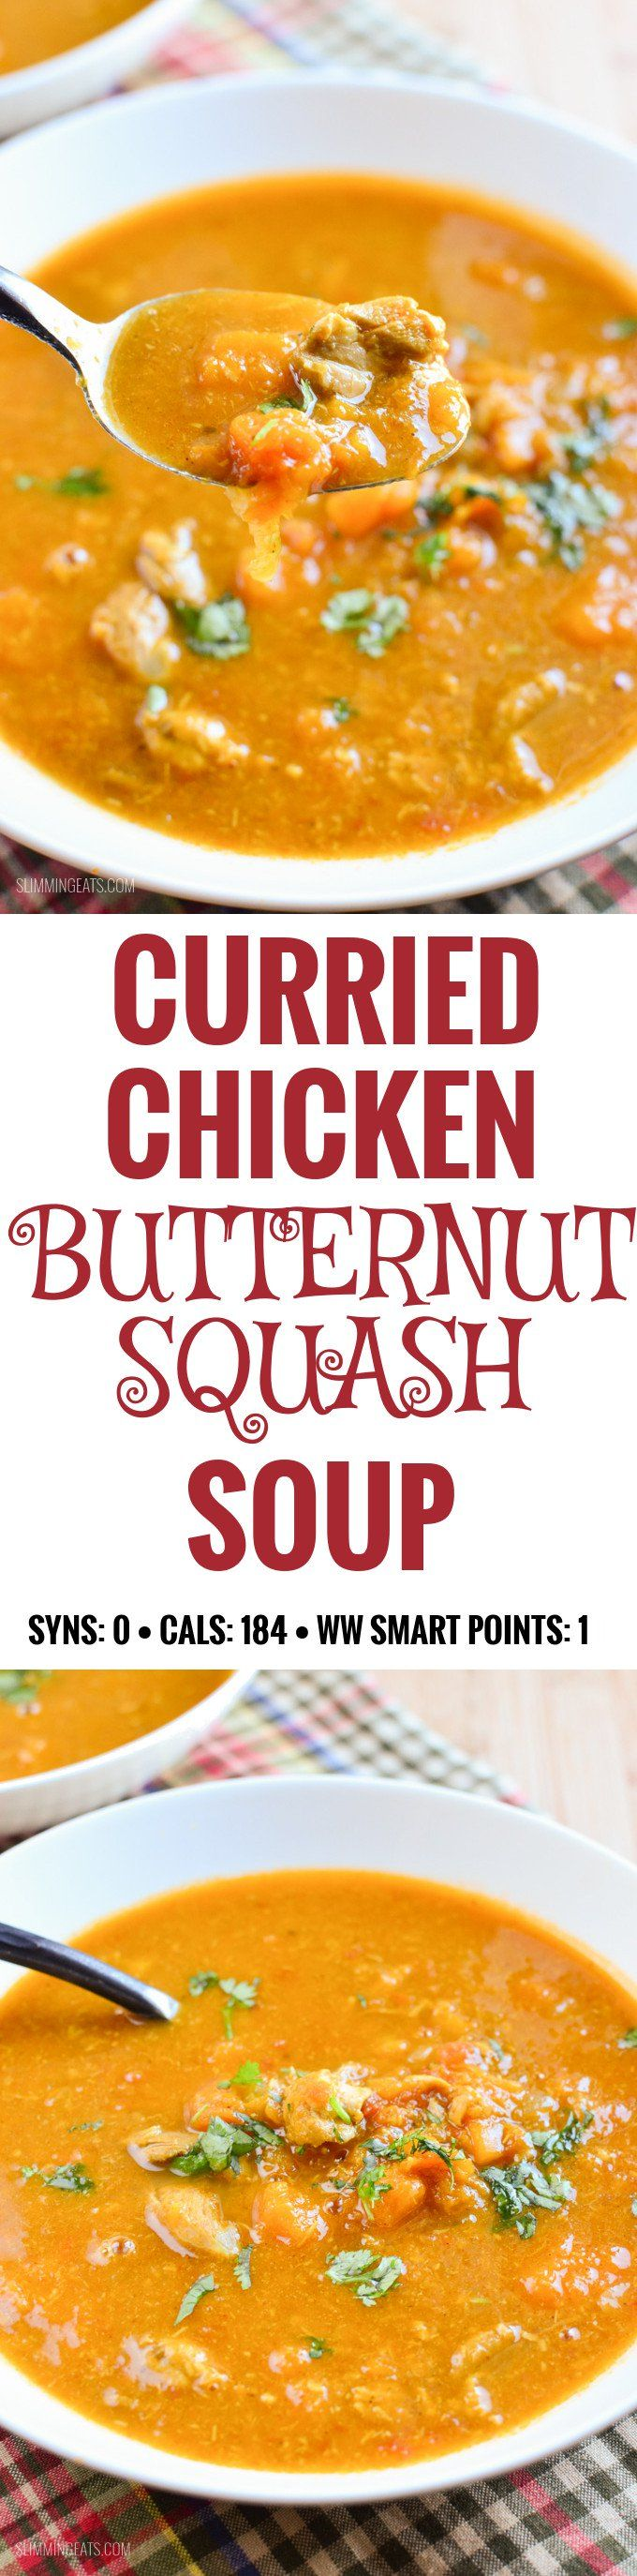 Slimming Eats Curried Chicken and Lentil Soup - gluten free, dairy free, paleo, whole30, Slimming World and Weight Watchers friendly